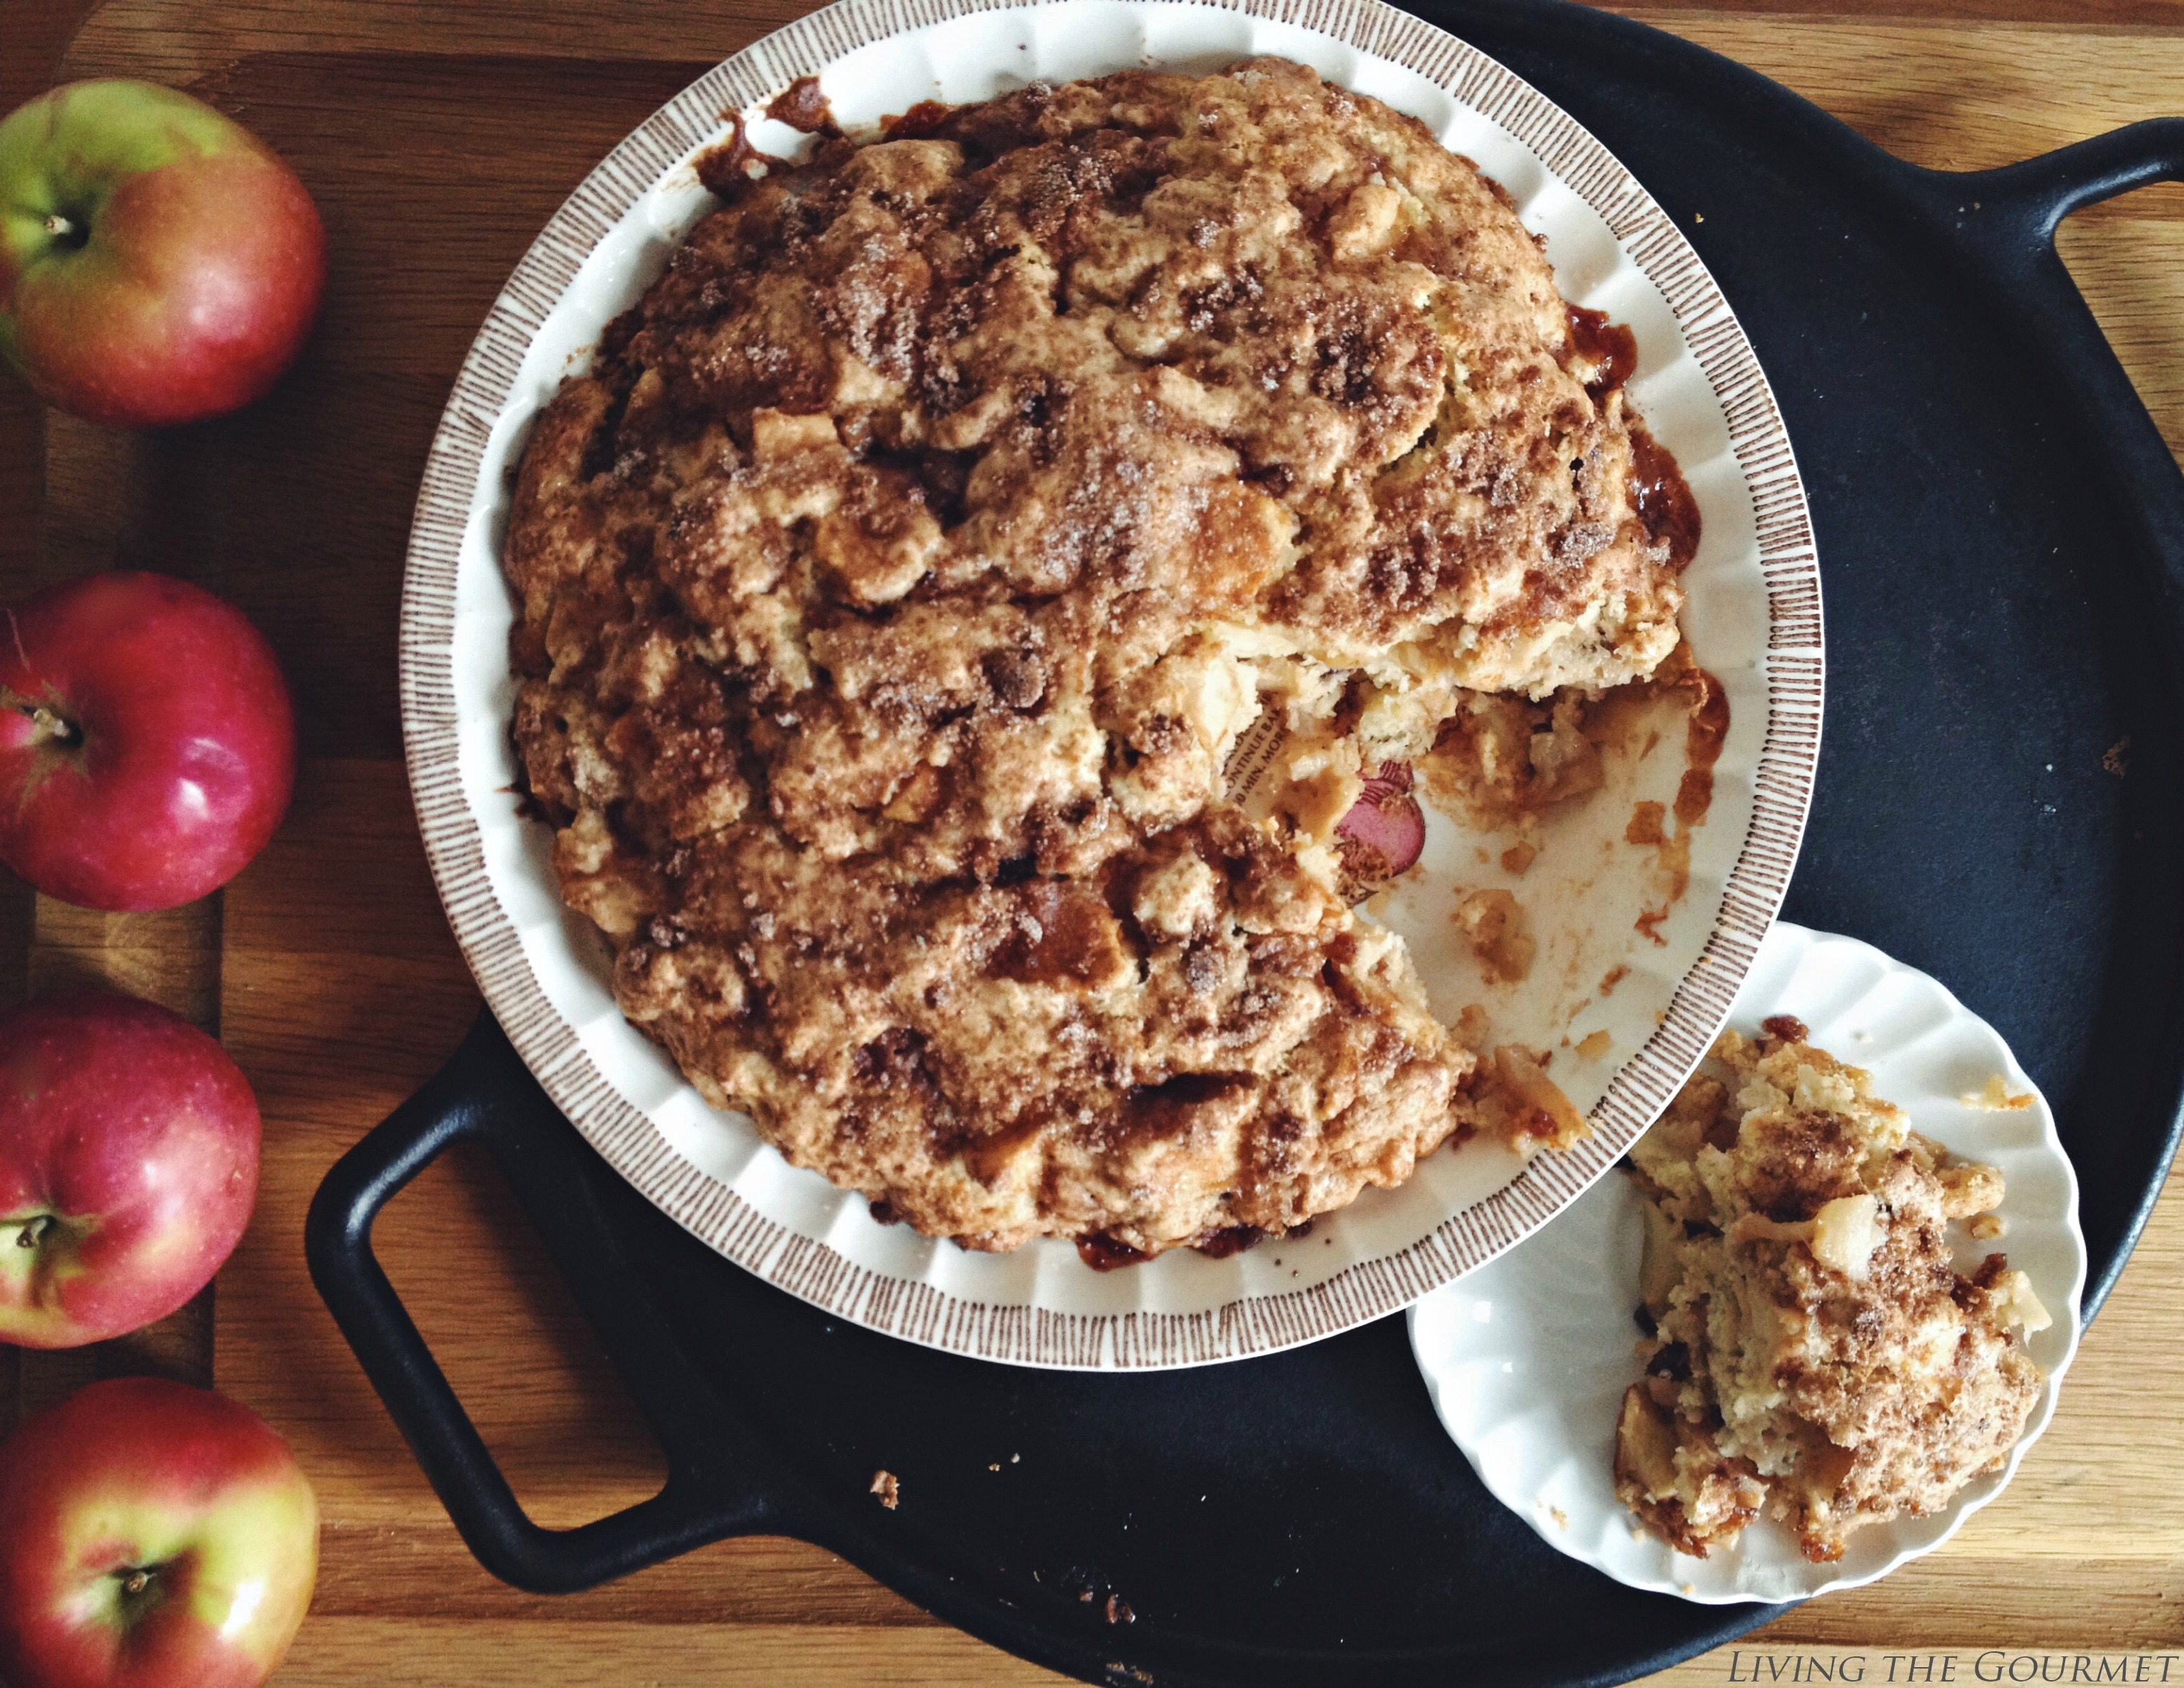 Living the Gourmet: Apple Chunck Breakfast Cake